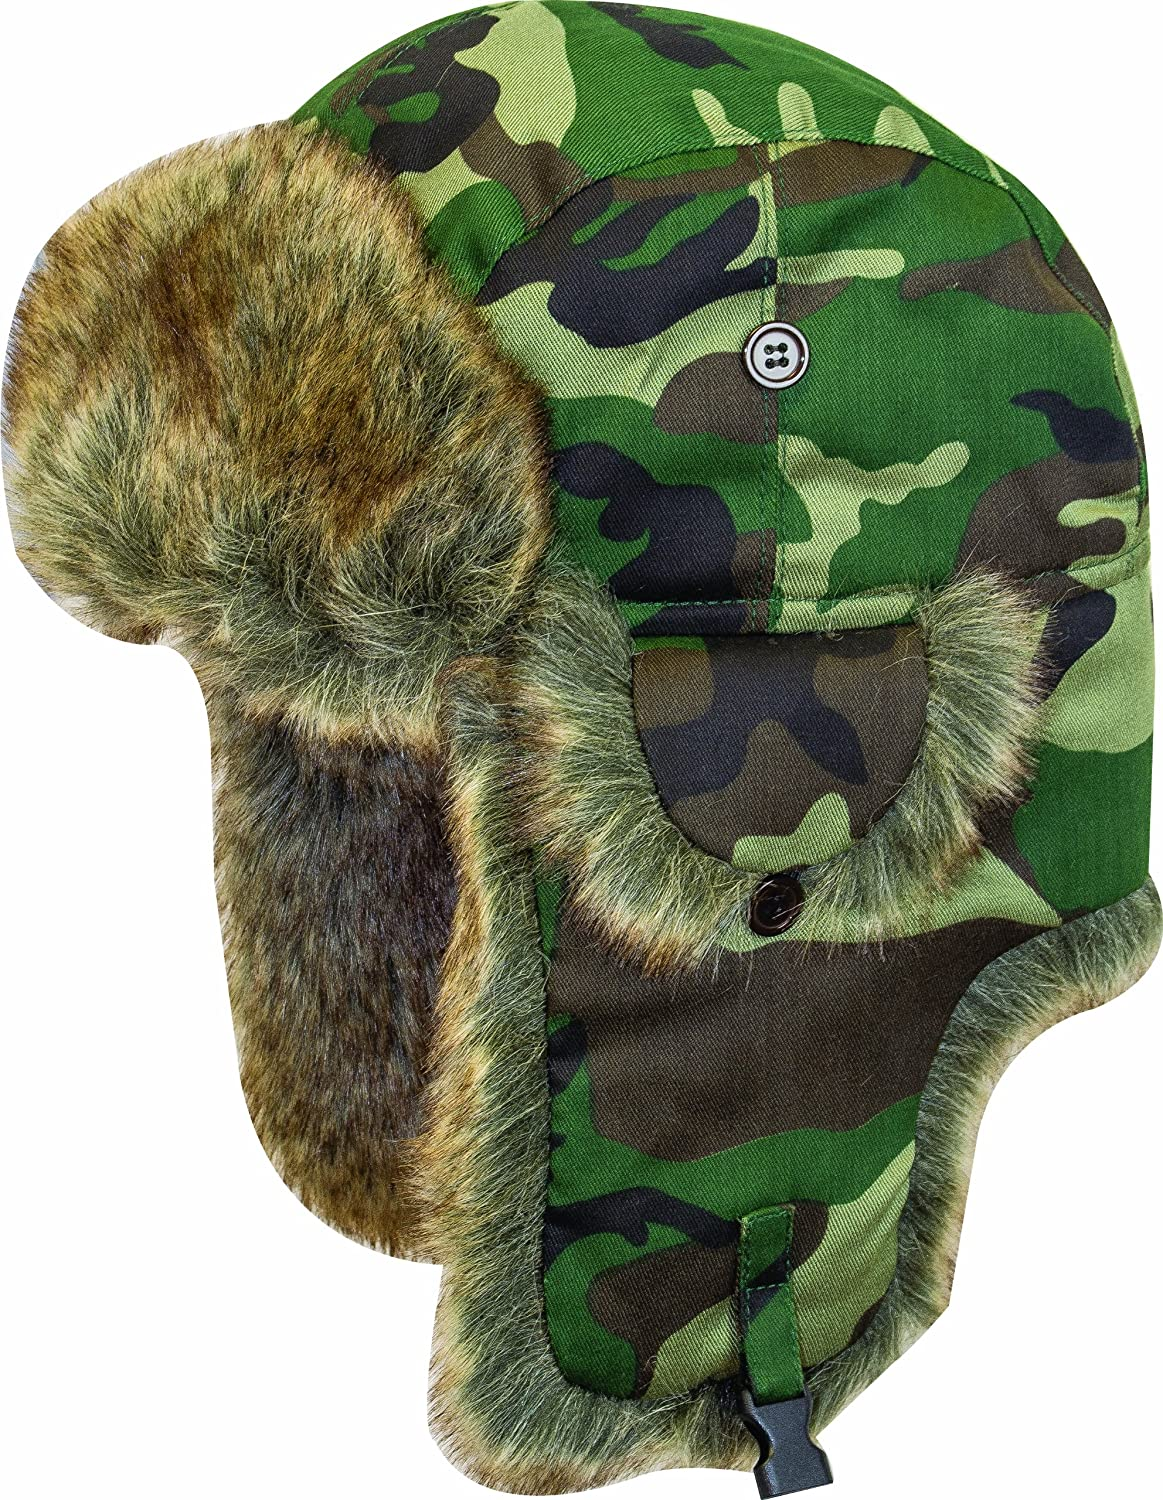 Highlander Flying Hat Gorro